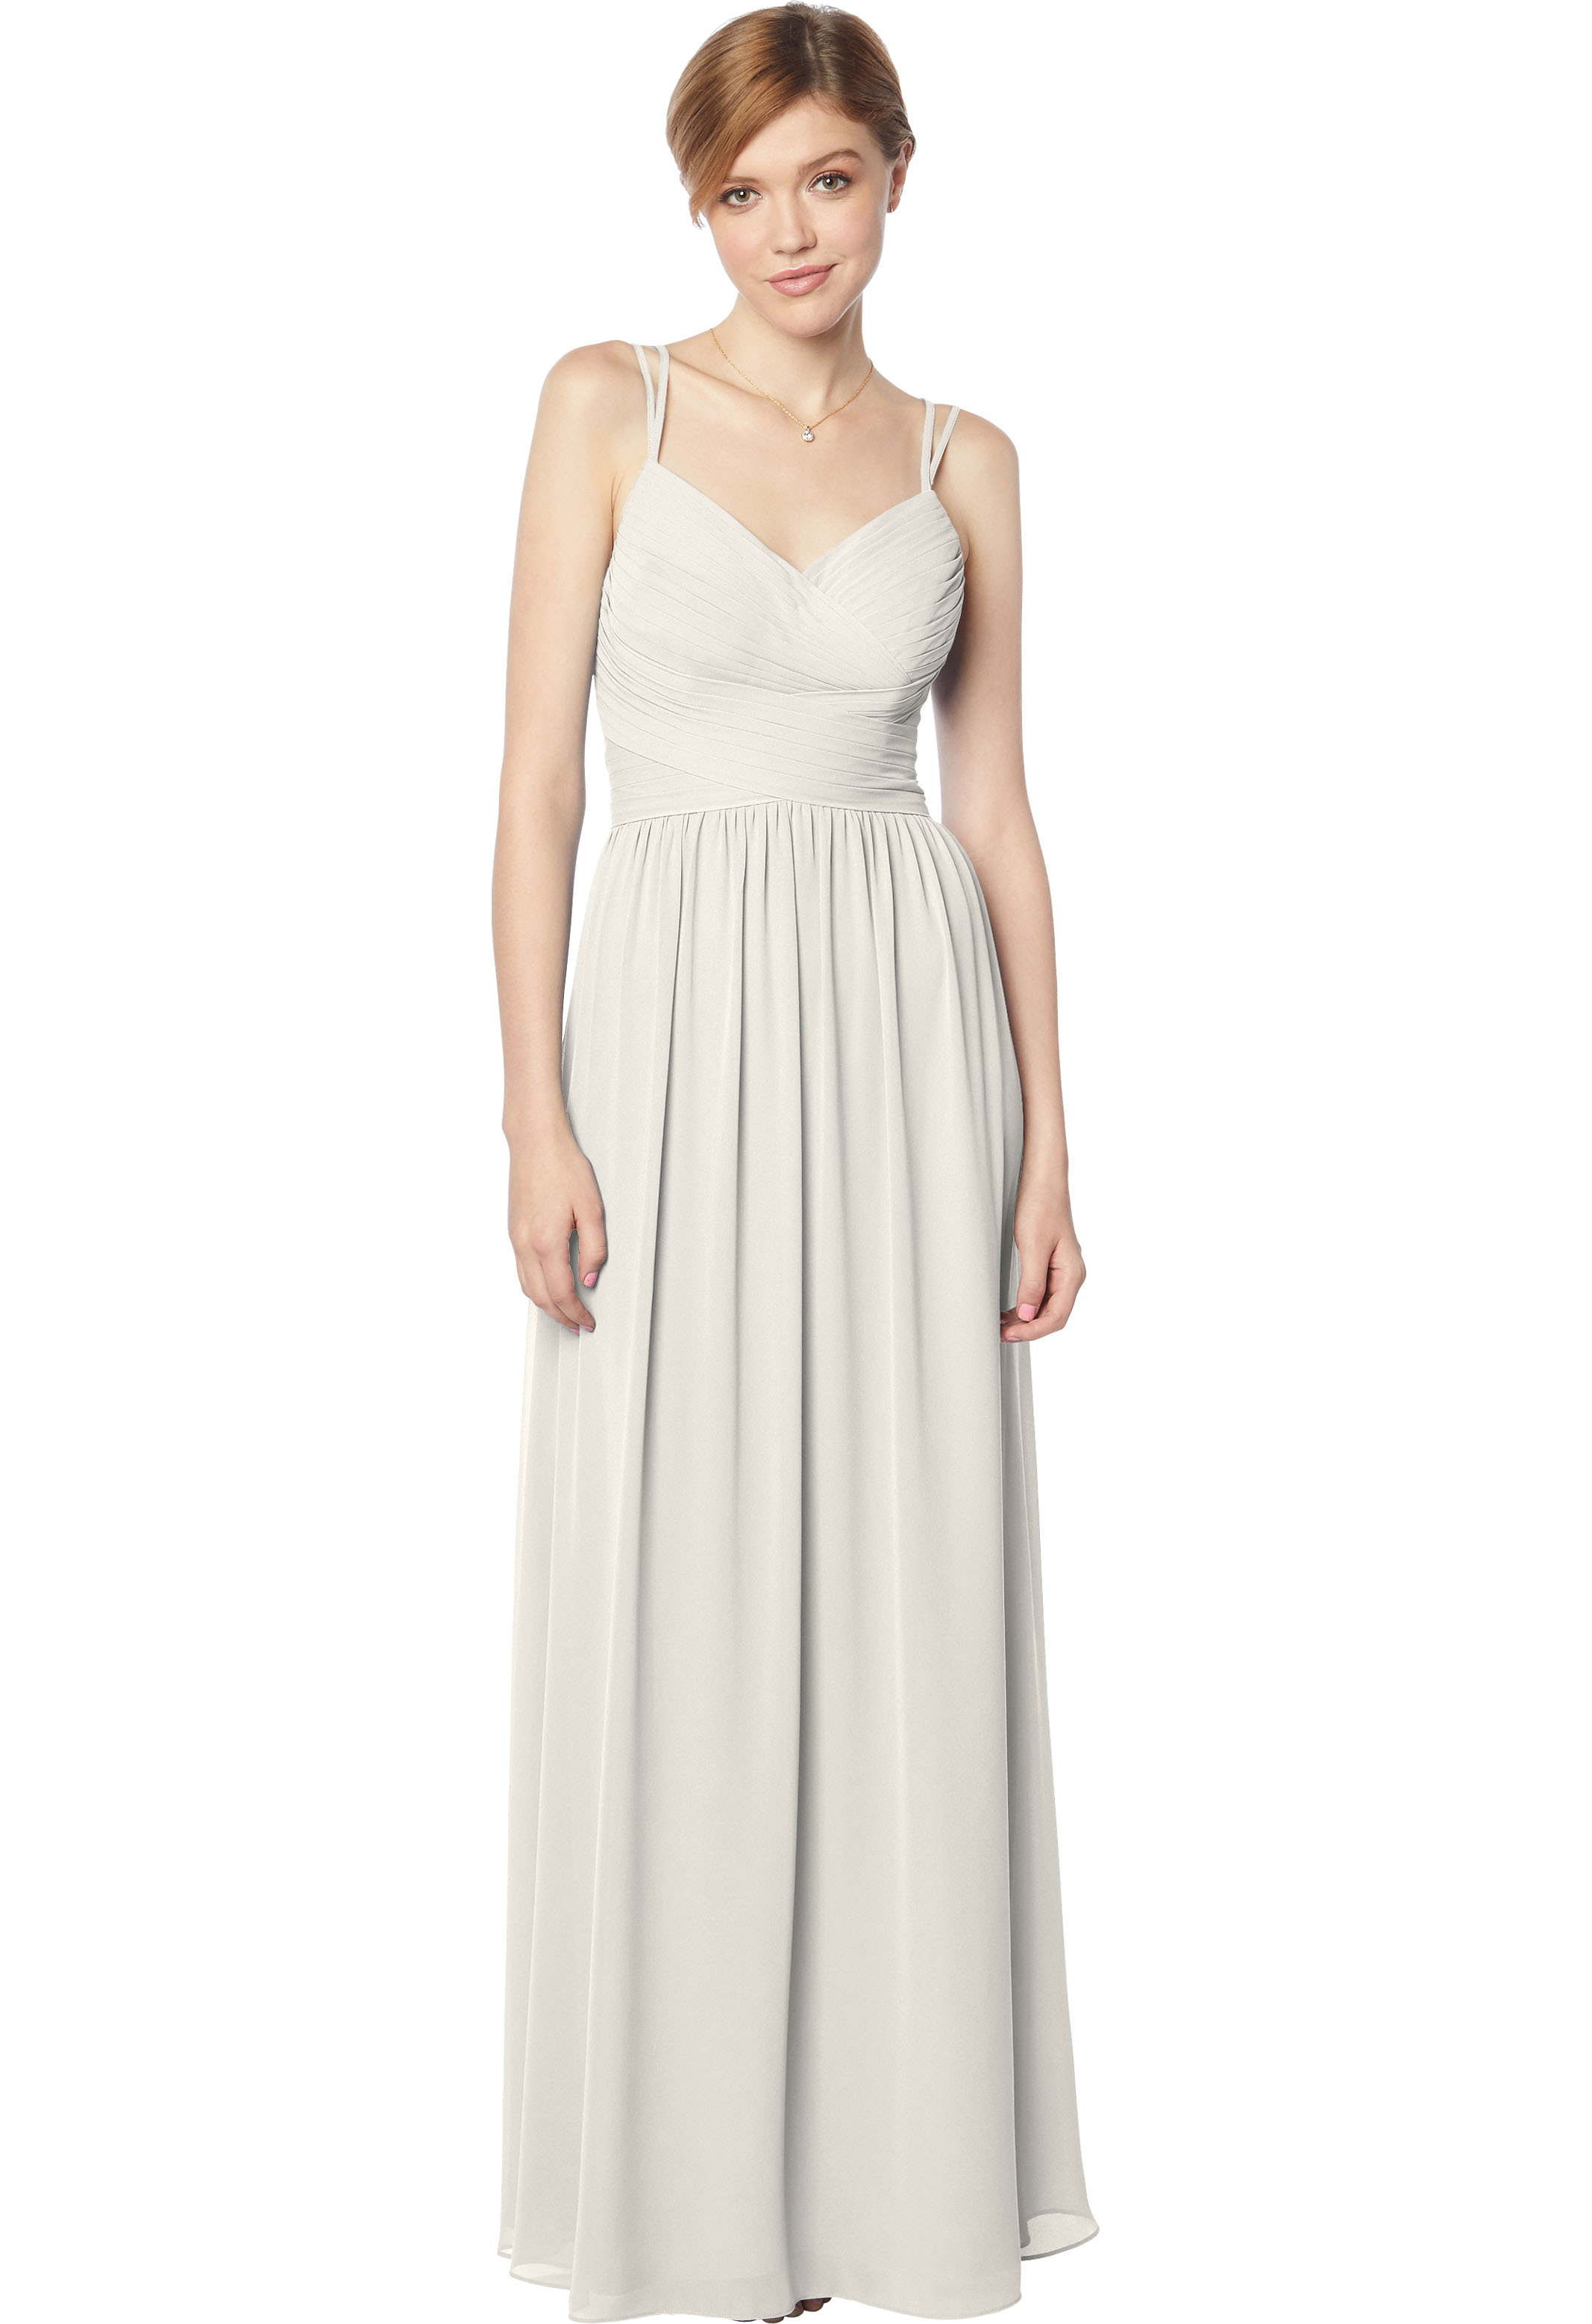 Bill Levkoff ROSEWOOD Chiffon V-neck A-line gown, $218.00 Front